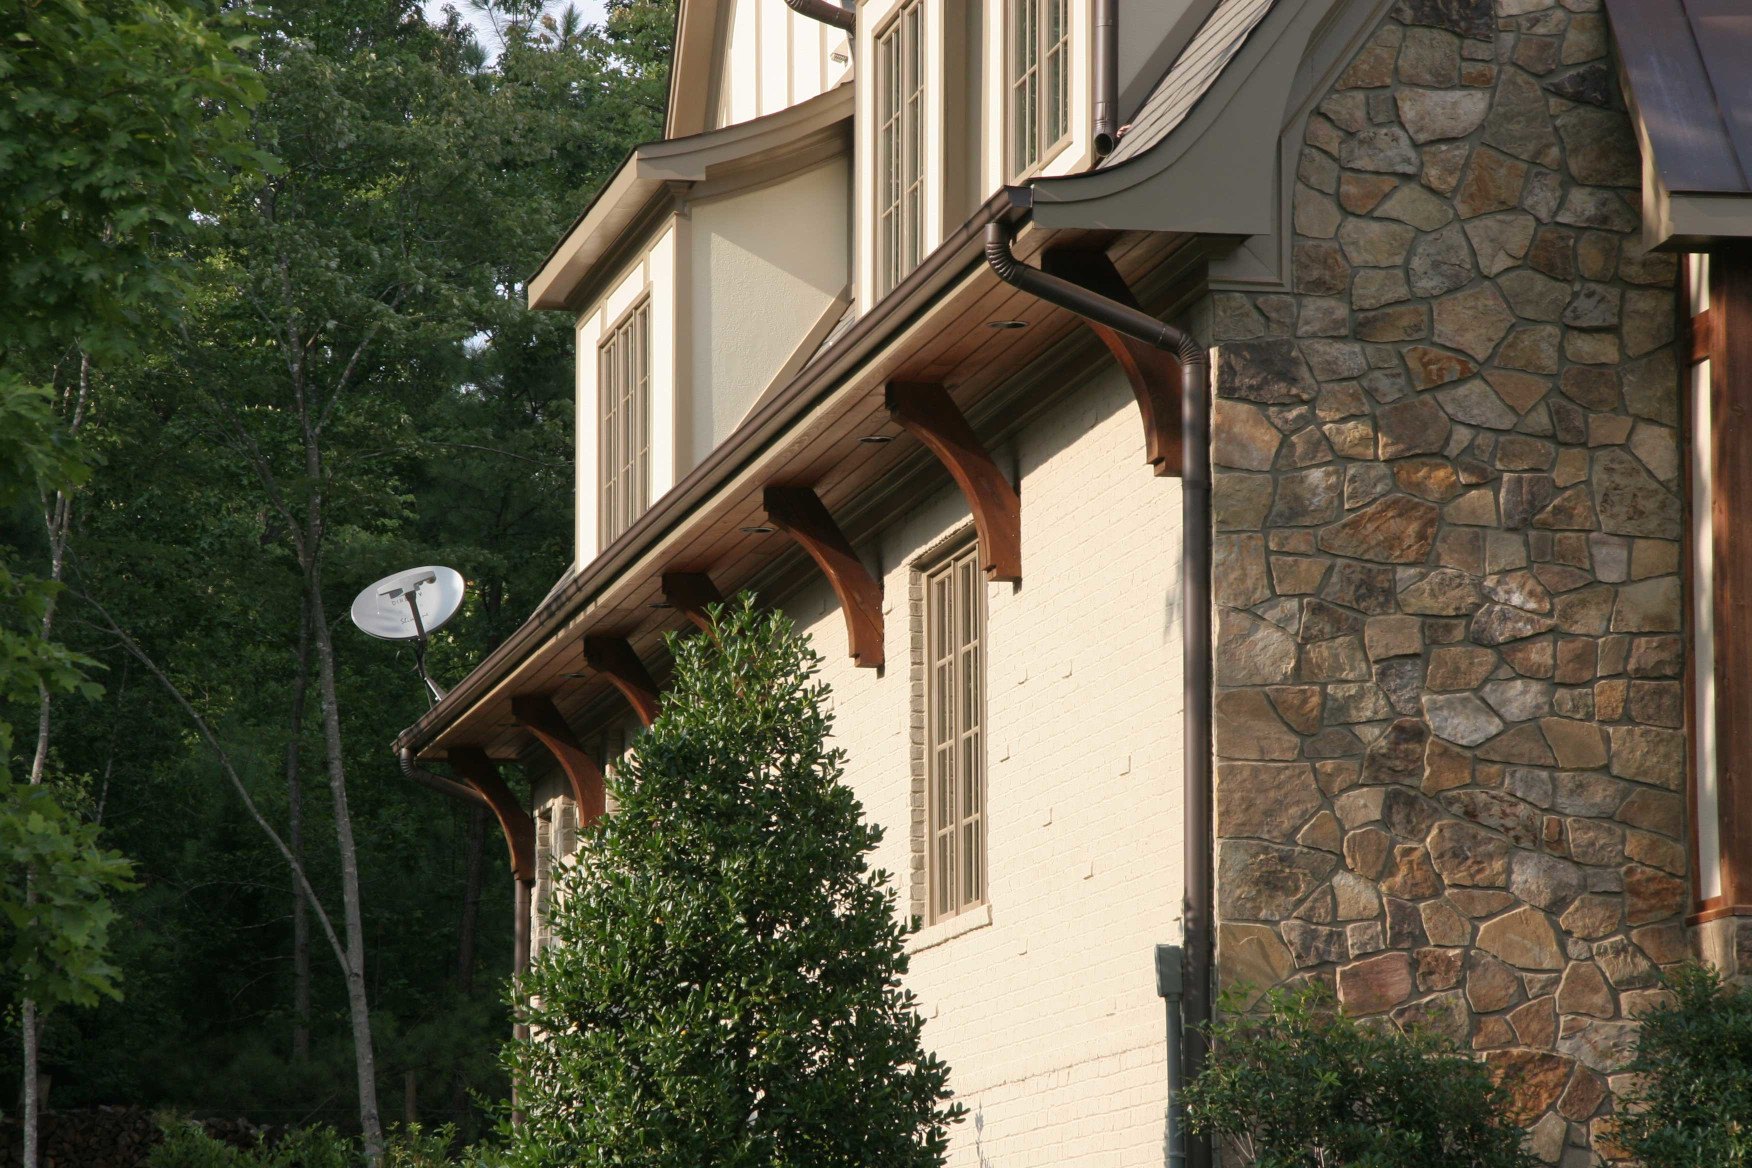 Wood braces are a detail that completes the exterior of this home.